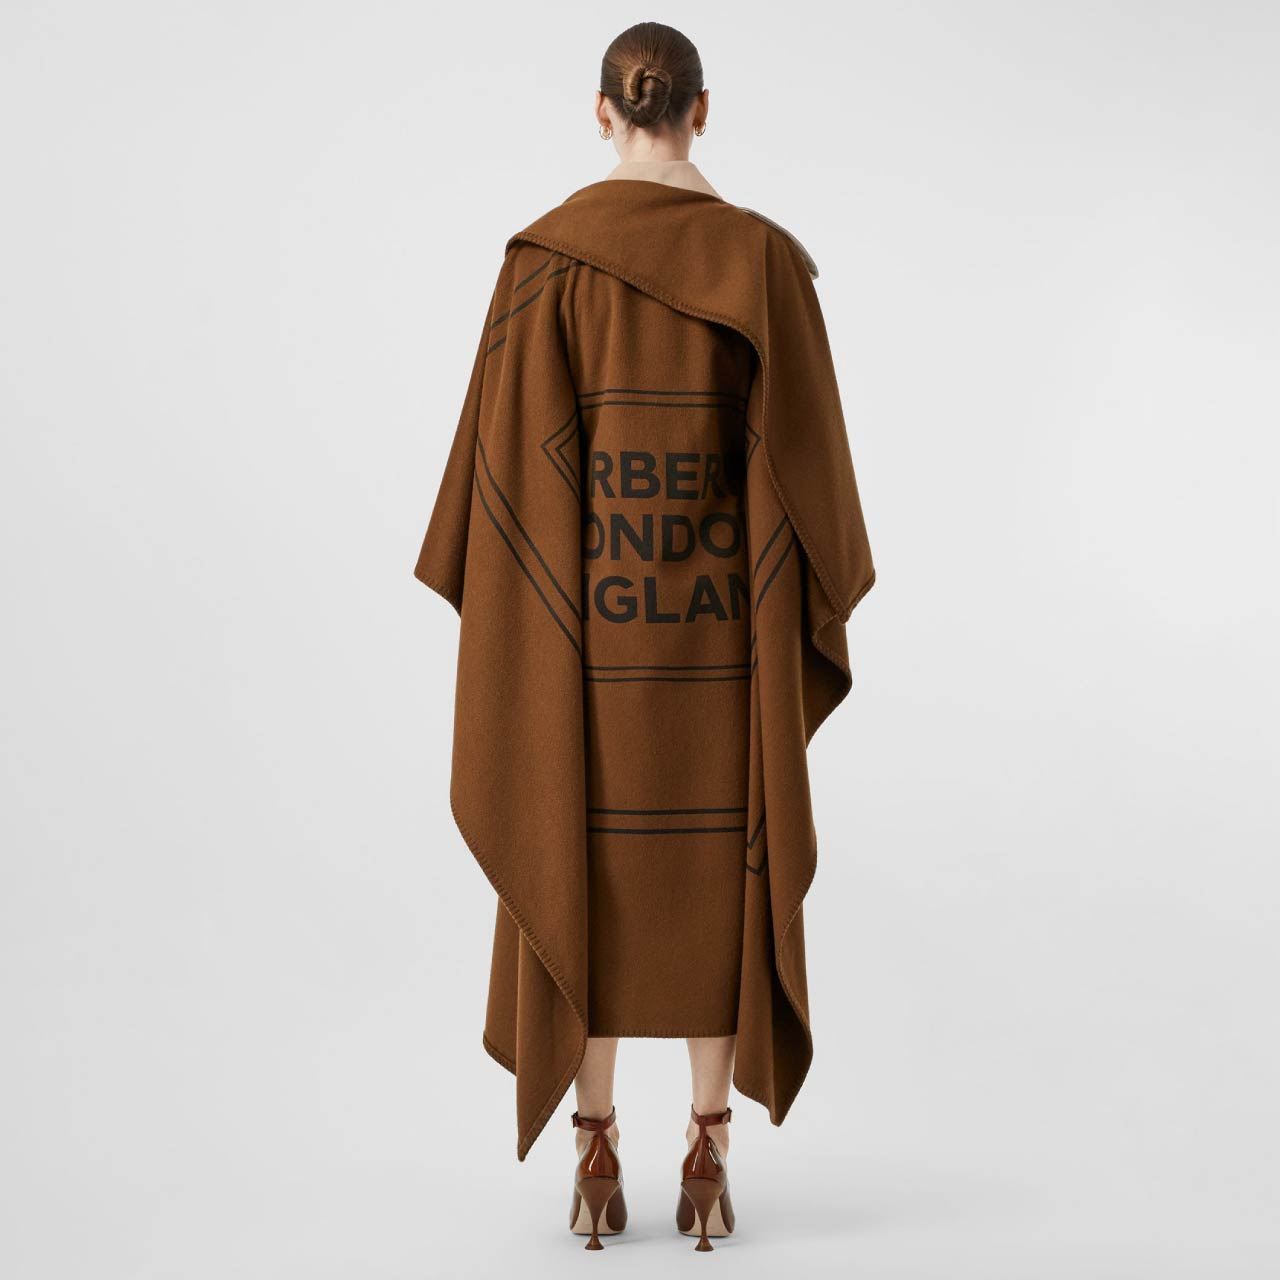 Burberry Trench Coat Details| The Cutting Class. Classic trench coat with detachable cashmere blanket, back view.